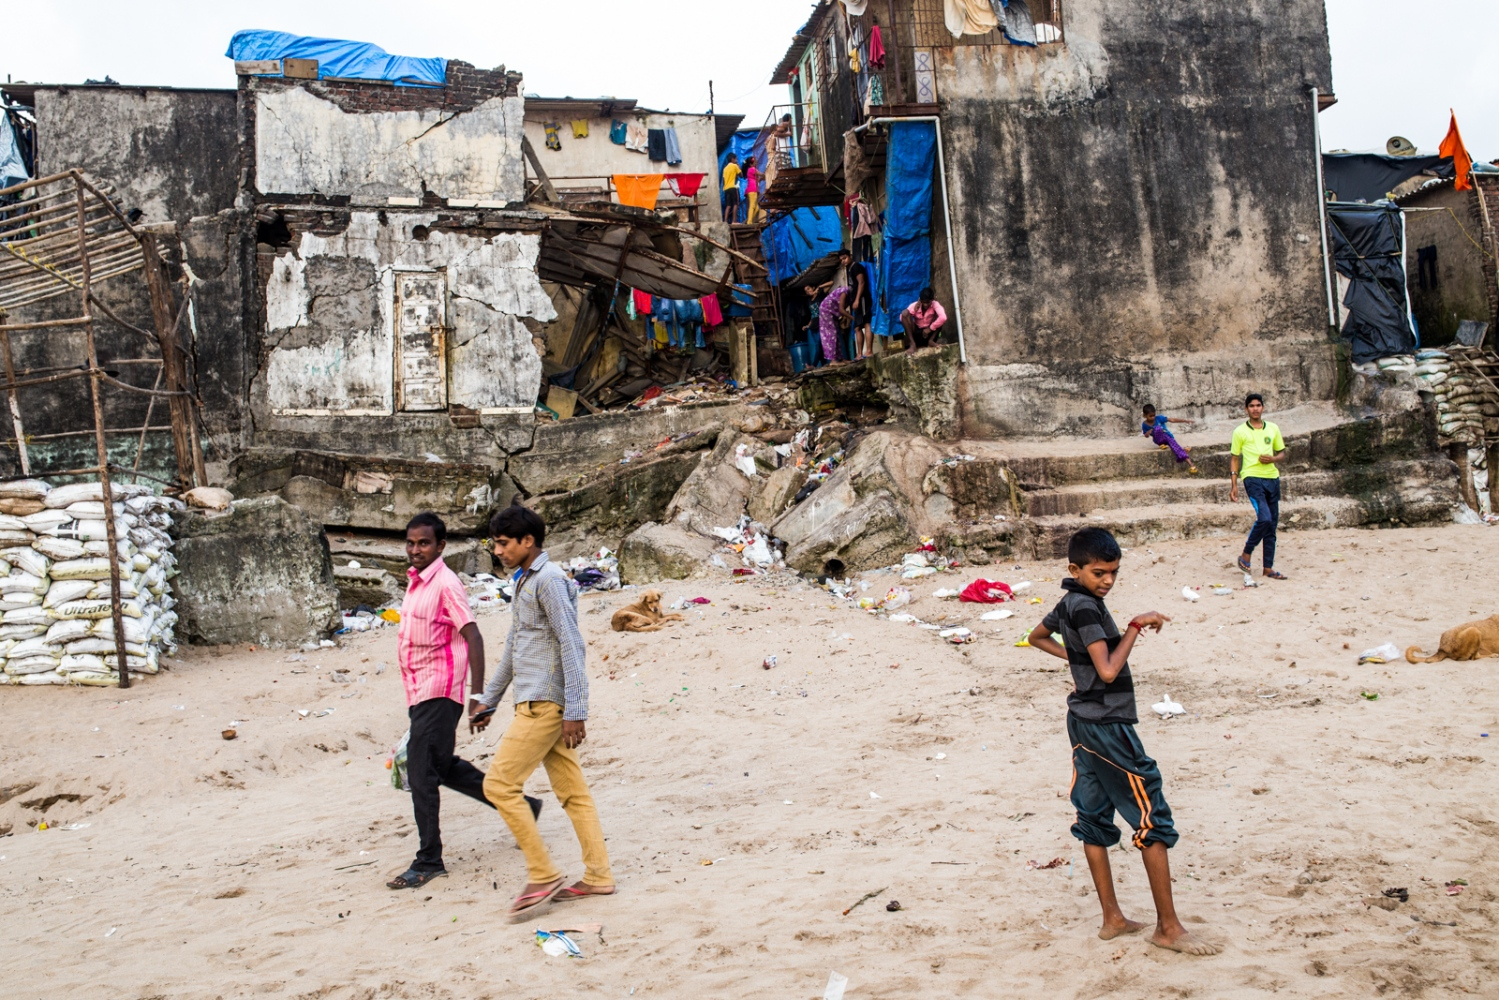 A beachside slum in Mumbai, India. Locals told me that each year they are at war with the sea as it is a constant threat to their homes. Pictured, is a testament to that, where a home has all but crumbled. As climate change intensifies and warmer global temperatures lead to greater sea-level rise from melting ice caps in the Arctic and Antarctic, vulnerable communities are going to be more susceptible to climate-related impacts. Generally speaking, poorer communities across the globe are more likely to be located in risk-prone areas. Rising seas in concert with stronger storm systems will no doubt in the future, and already are, impacting these populations that do not have the resources to adapt, rebuild constantly, or move.